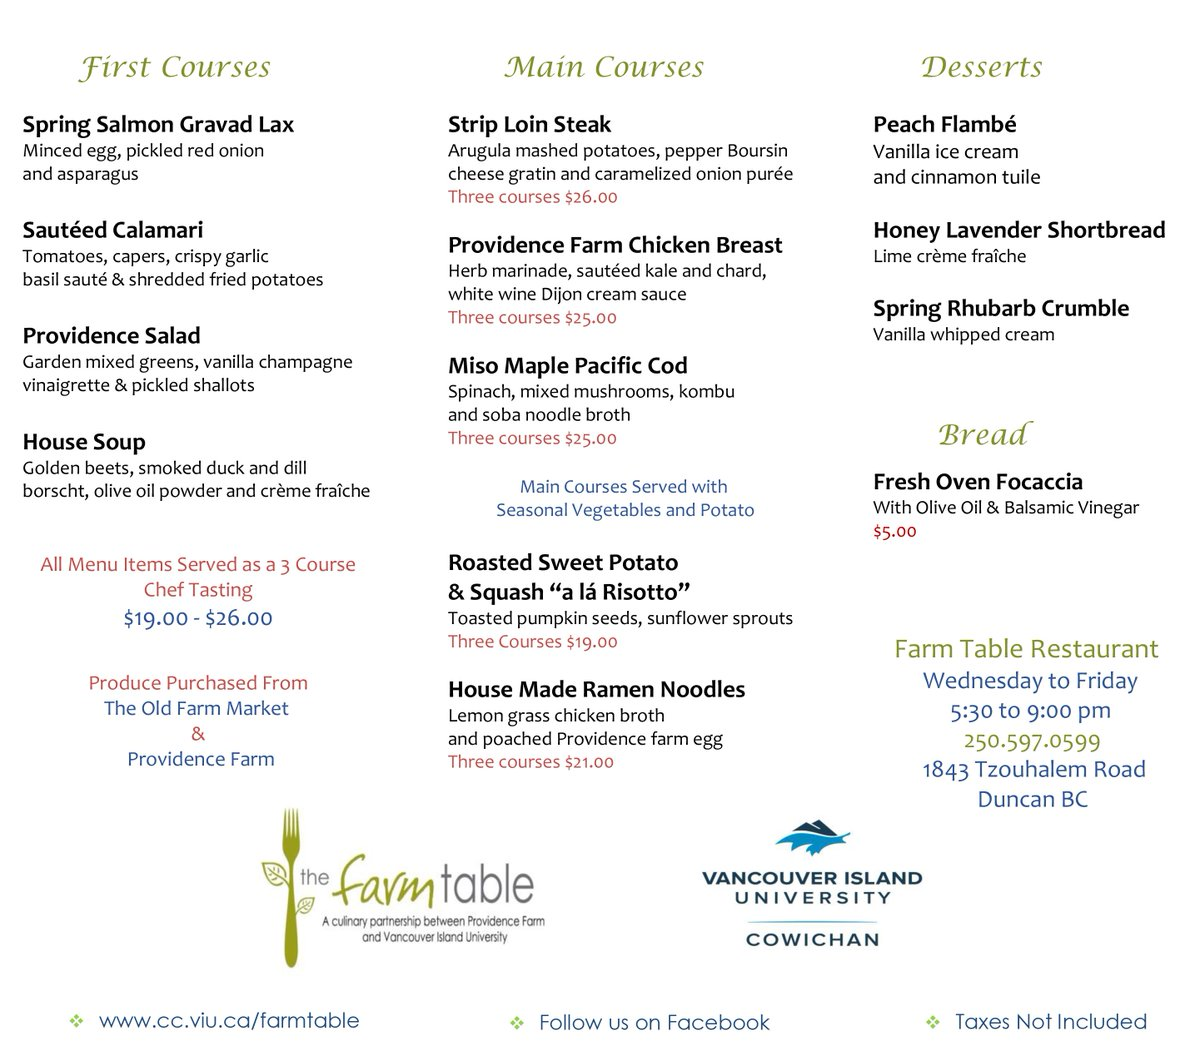 VIU Cowichan On Twitter Check Out The New Farm Table Restaurant - Farm and table reservations